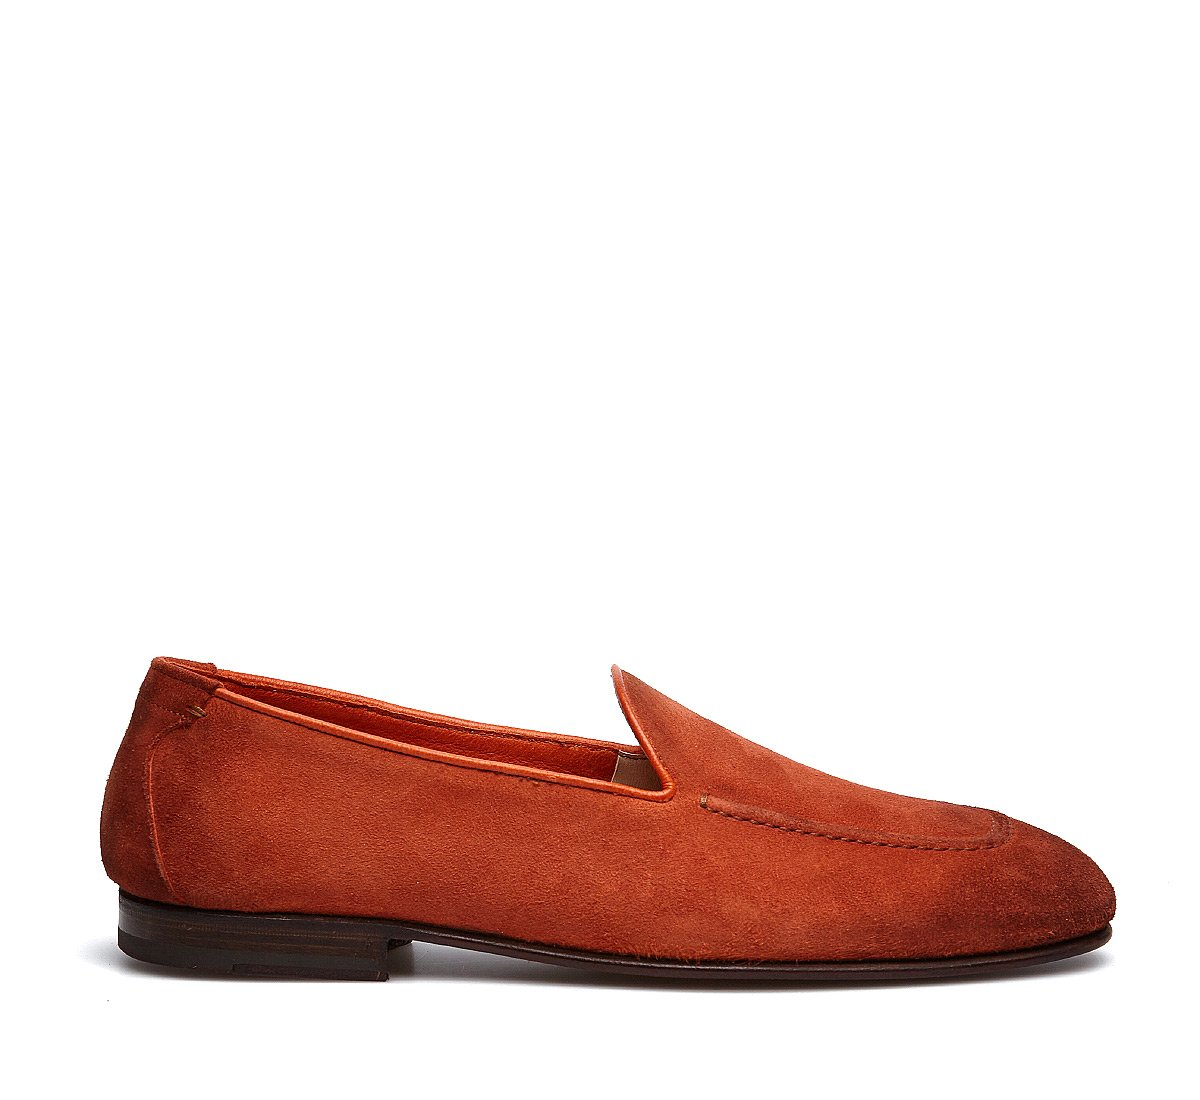 Reversed deerskin moccasins with reverse Goodyear construction